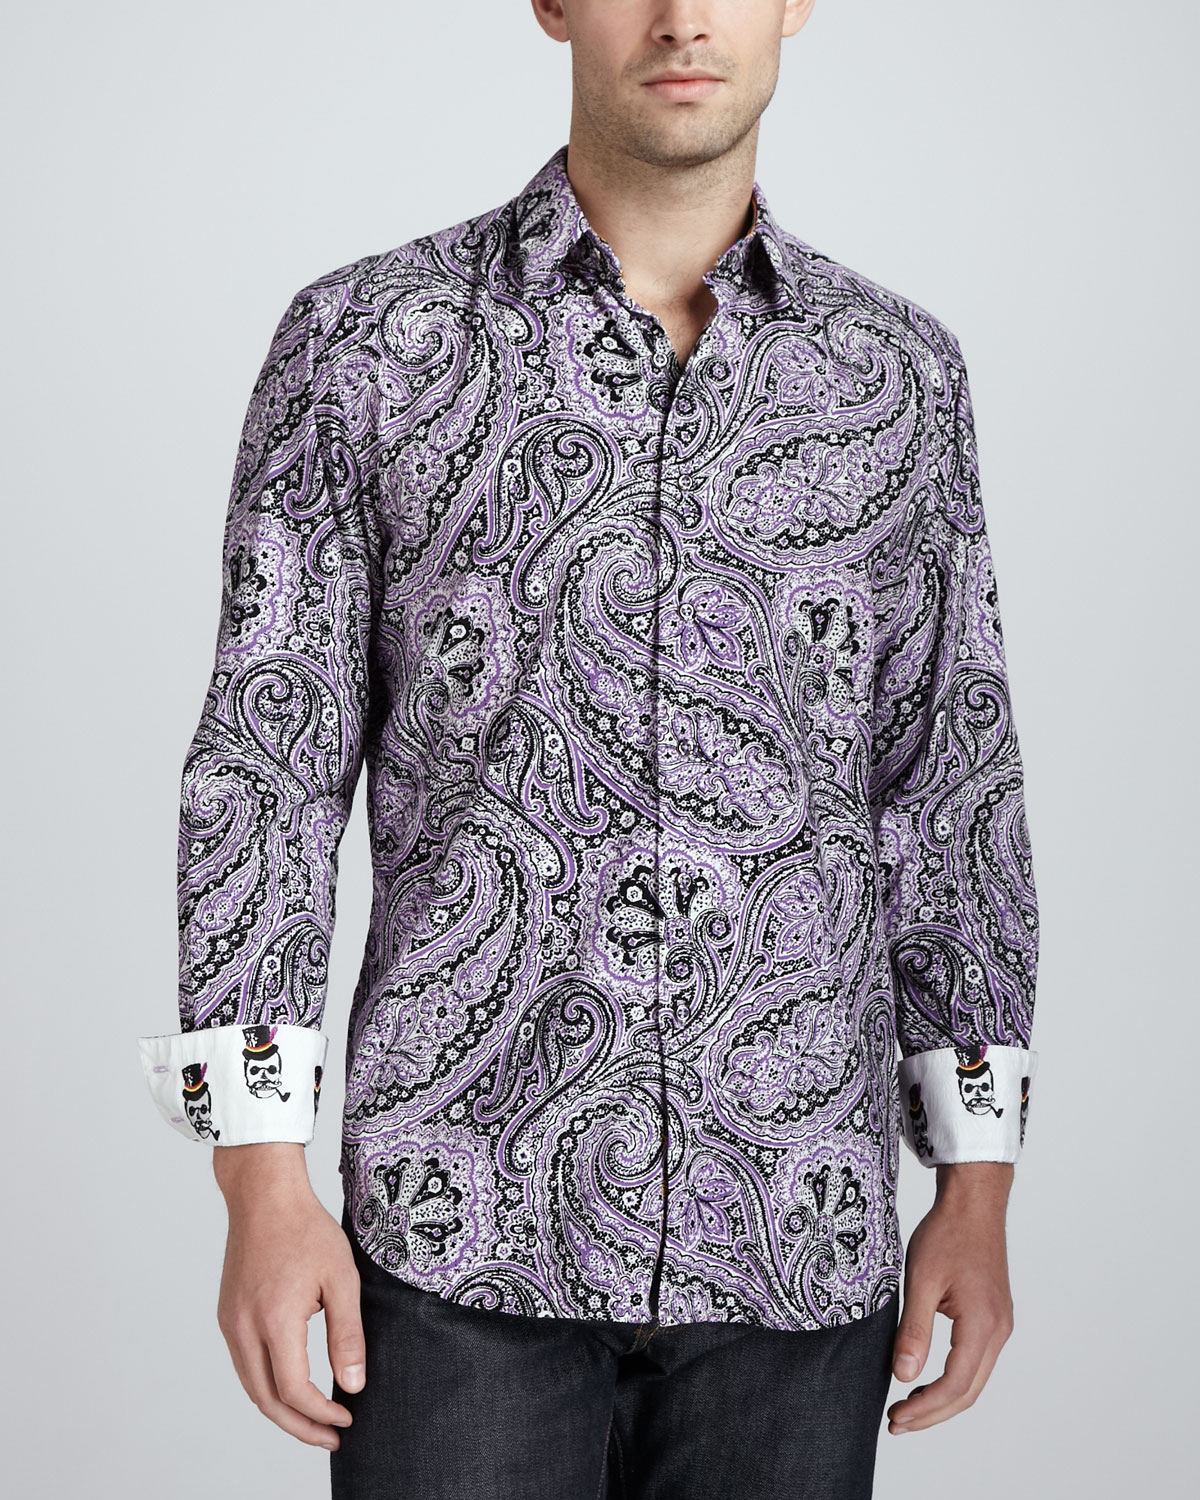 Robert graham joule paisley sport shirt purple in gray for for Where are robert graham shirts made